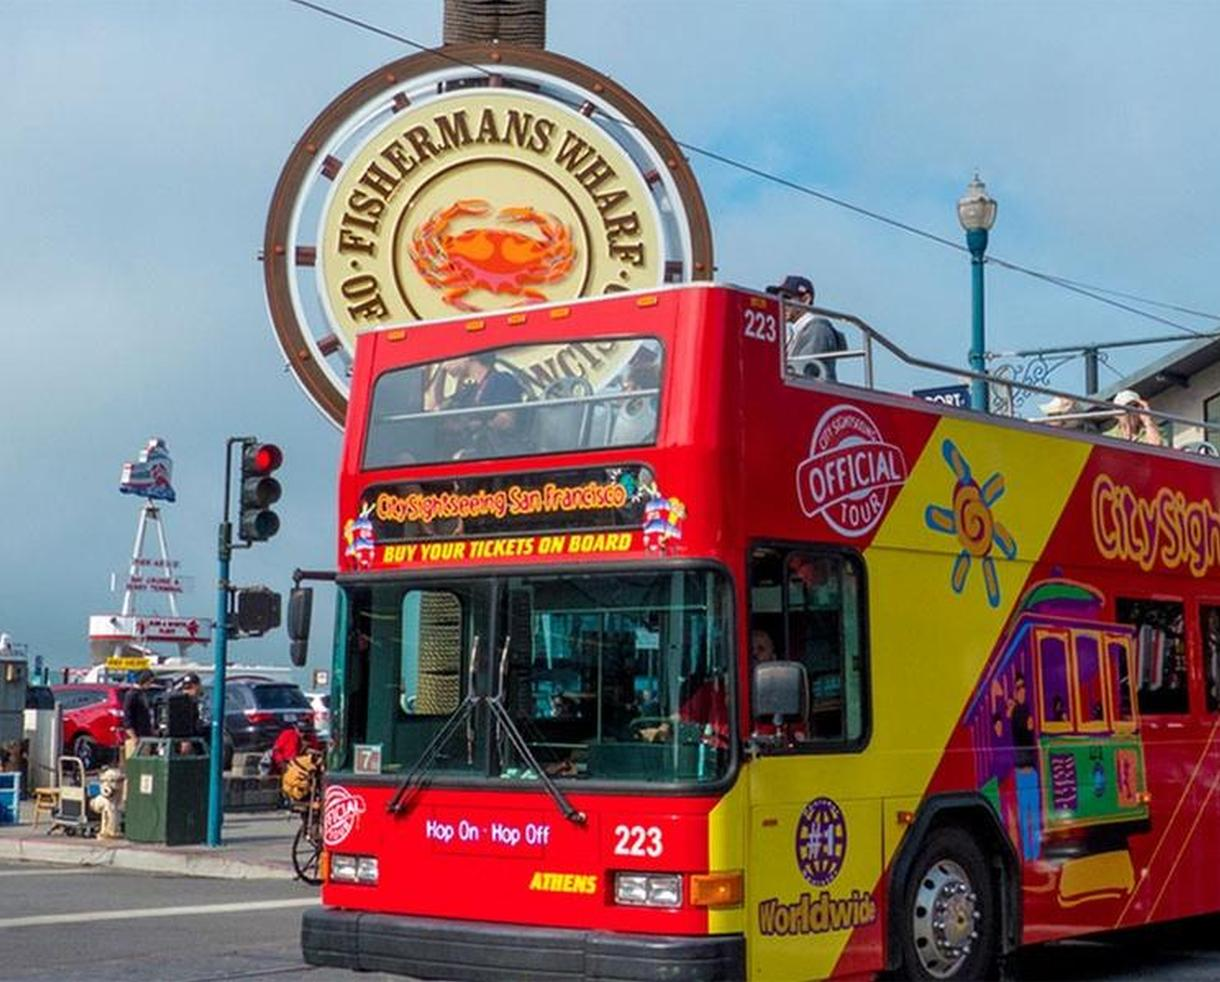 Hop On/Hop Off Tour for Adults or Children from City Sightseeing